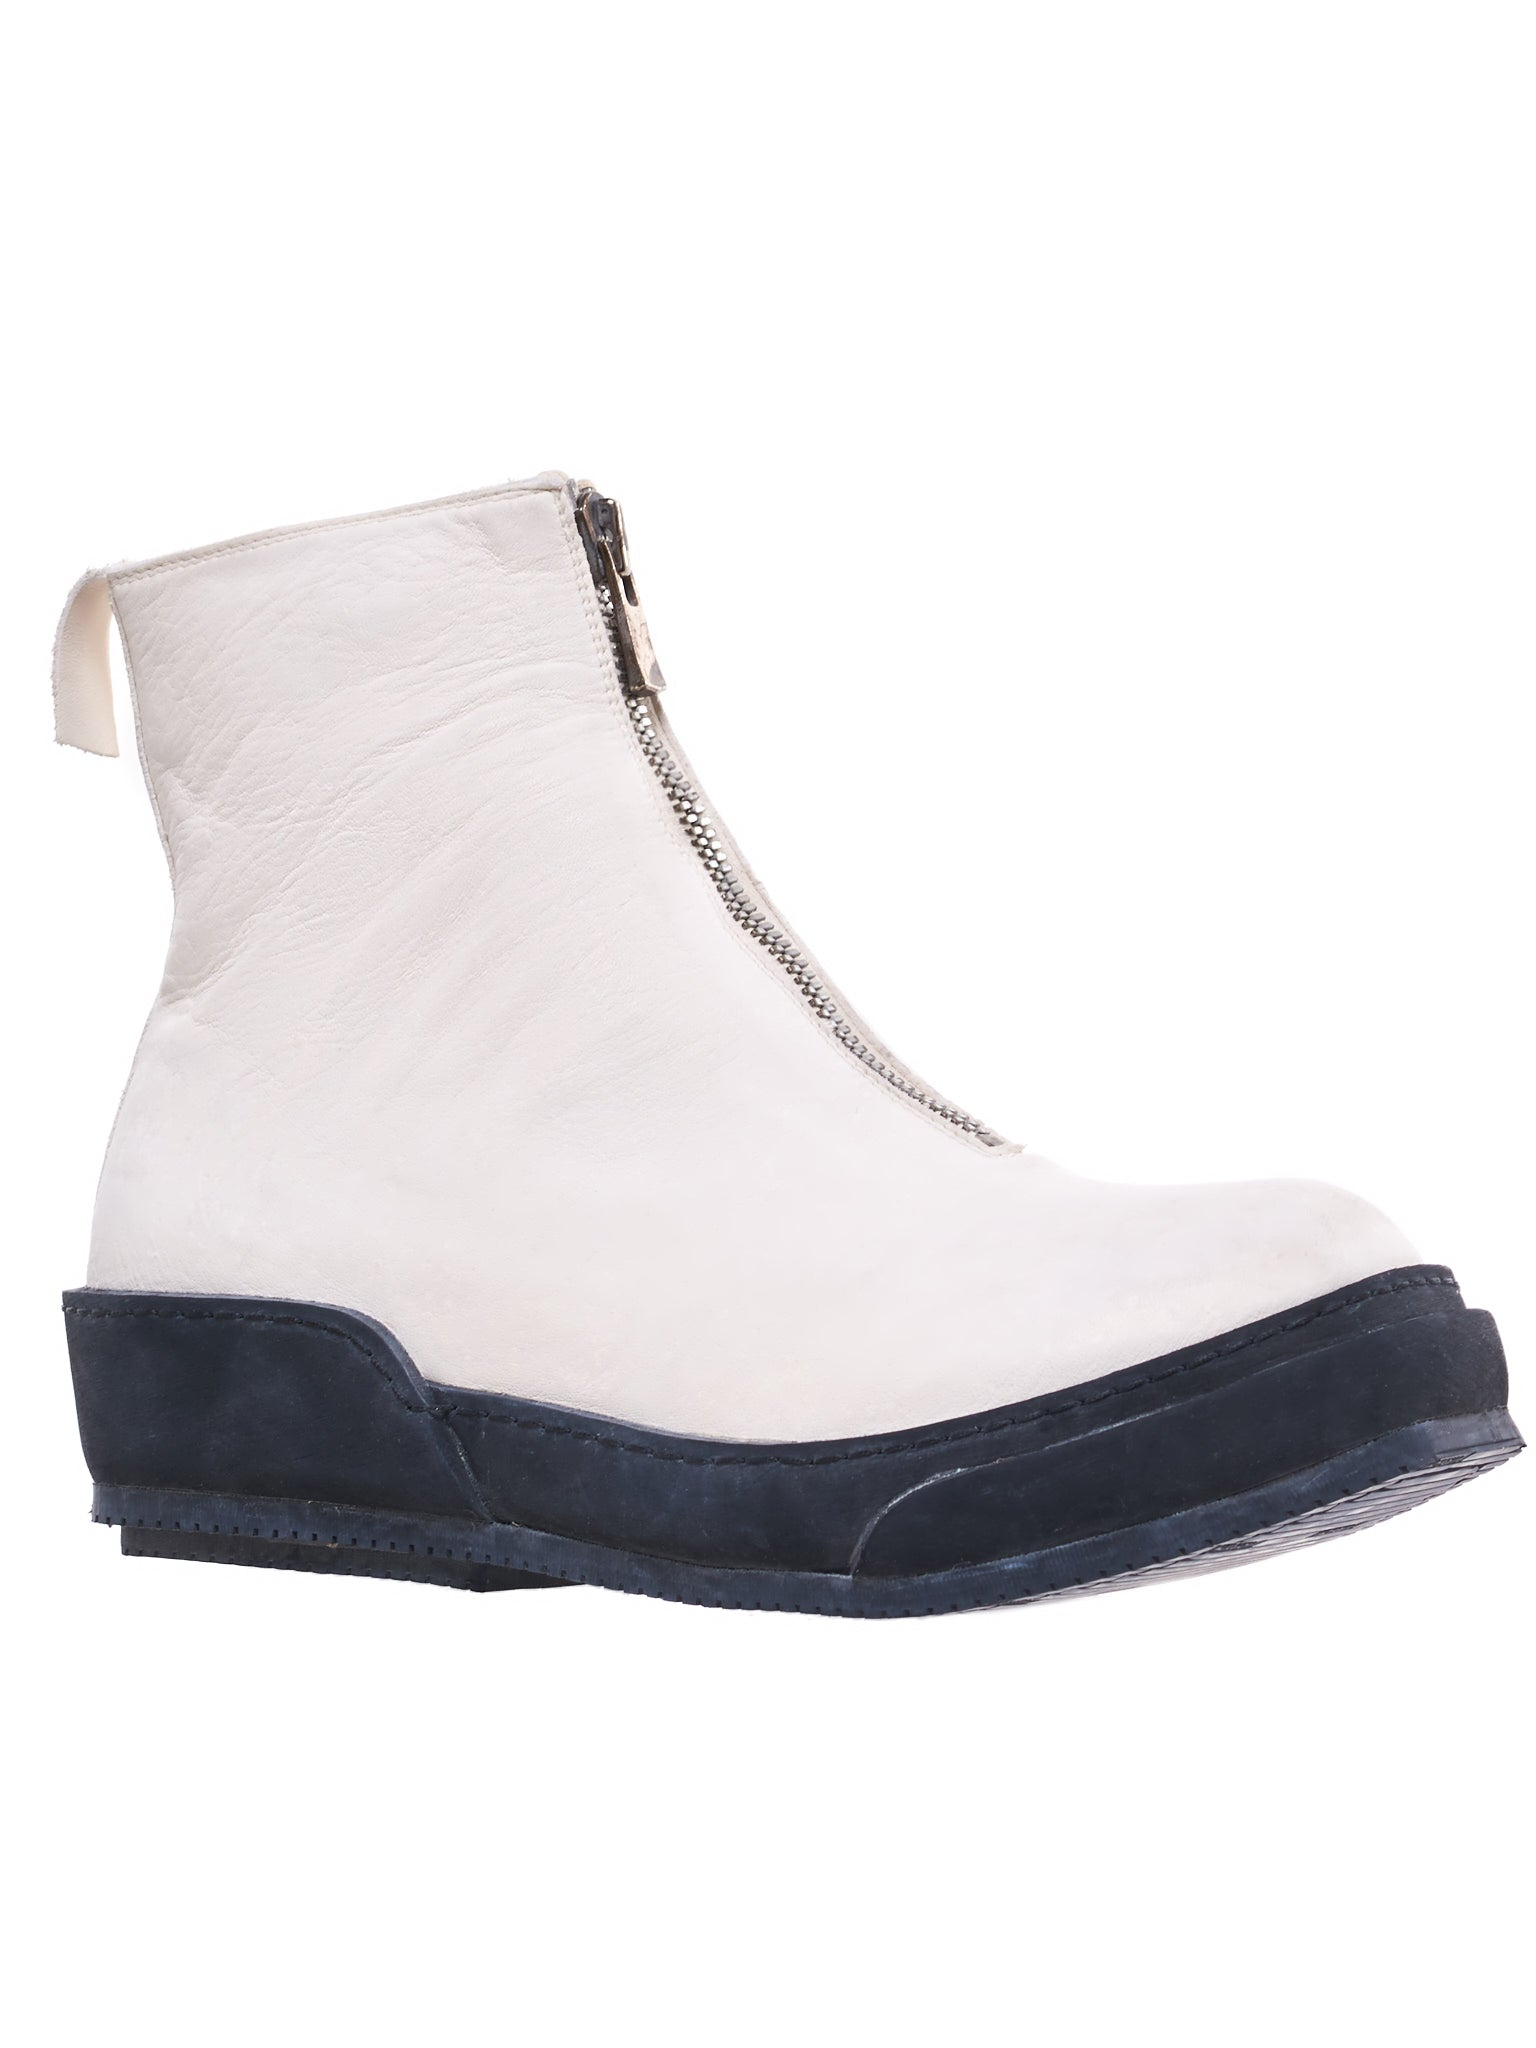 PLS Leather Boot (PLS-SOFT-HORSE-FG-WHITE)